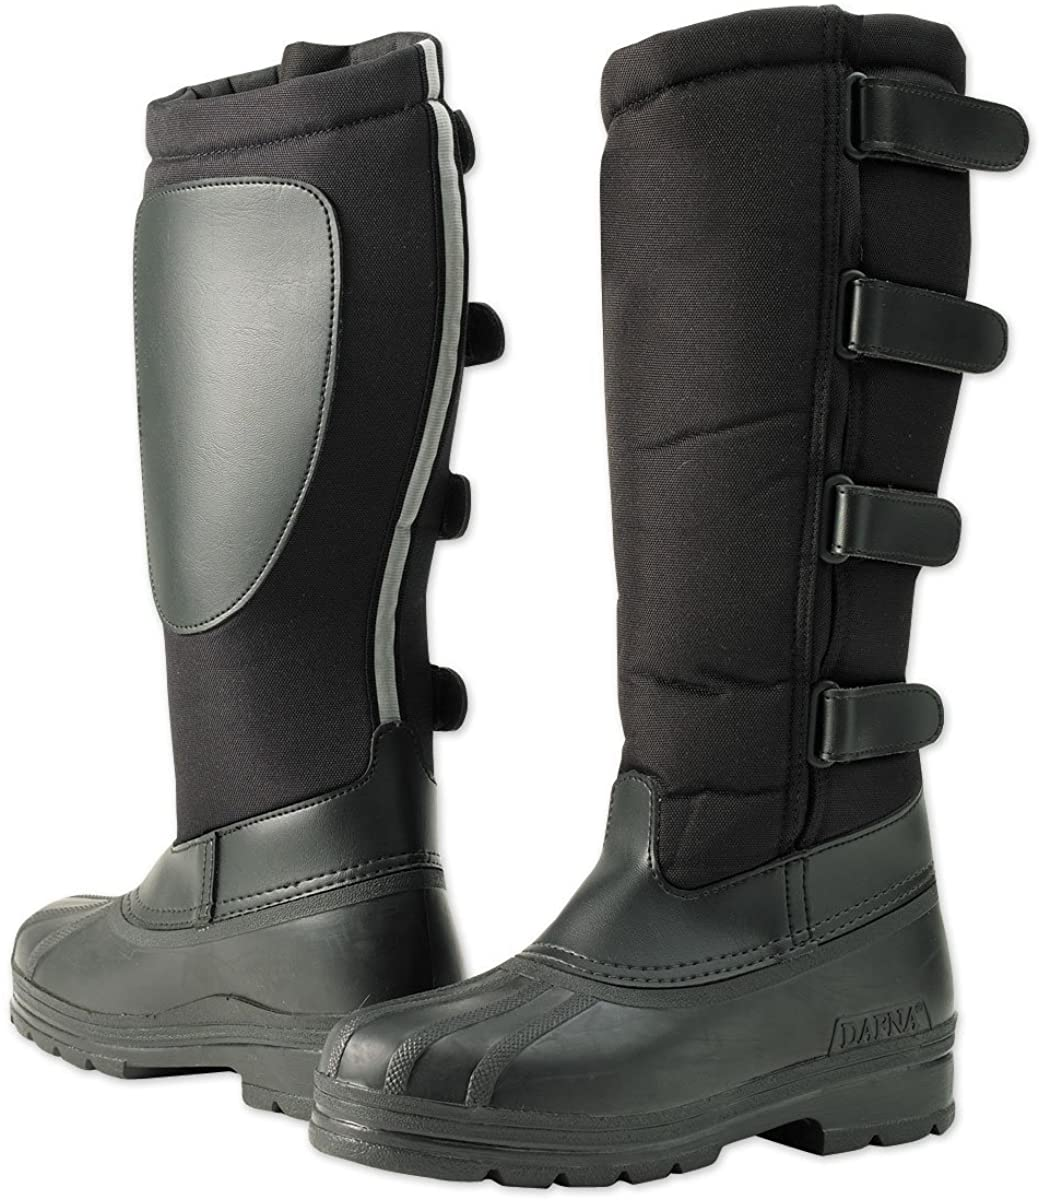 Ovation Ladies Blizzard Winter Riding Boots (7) Black